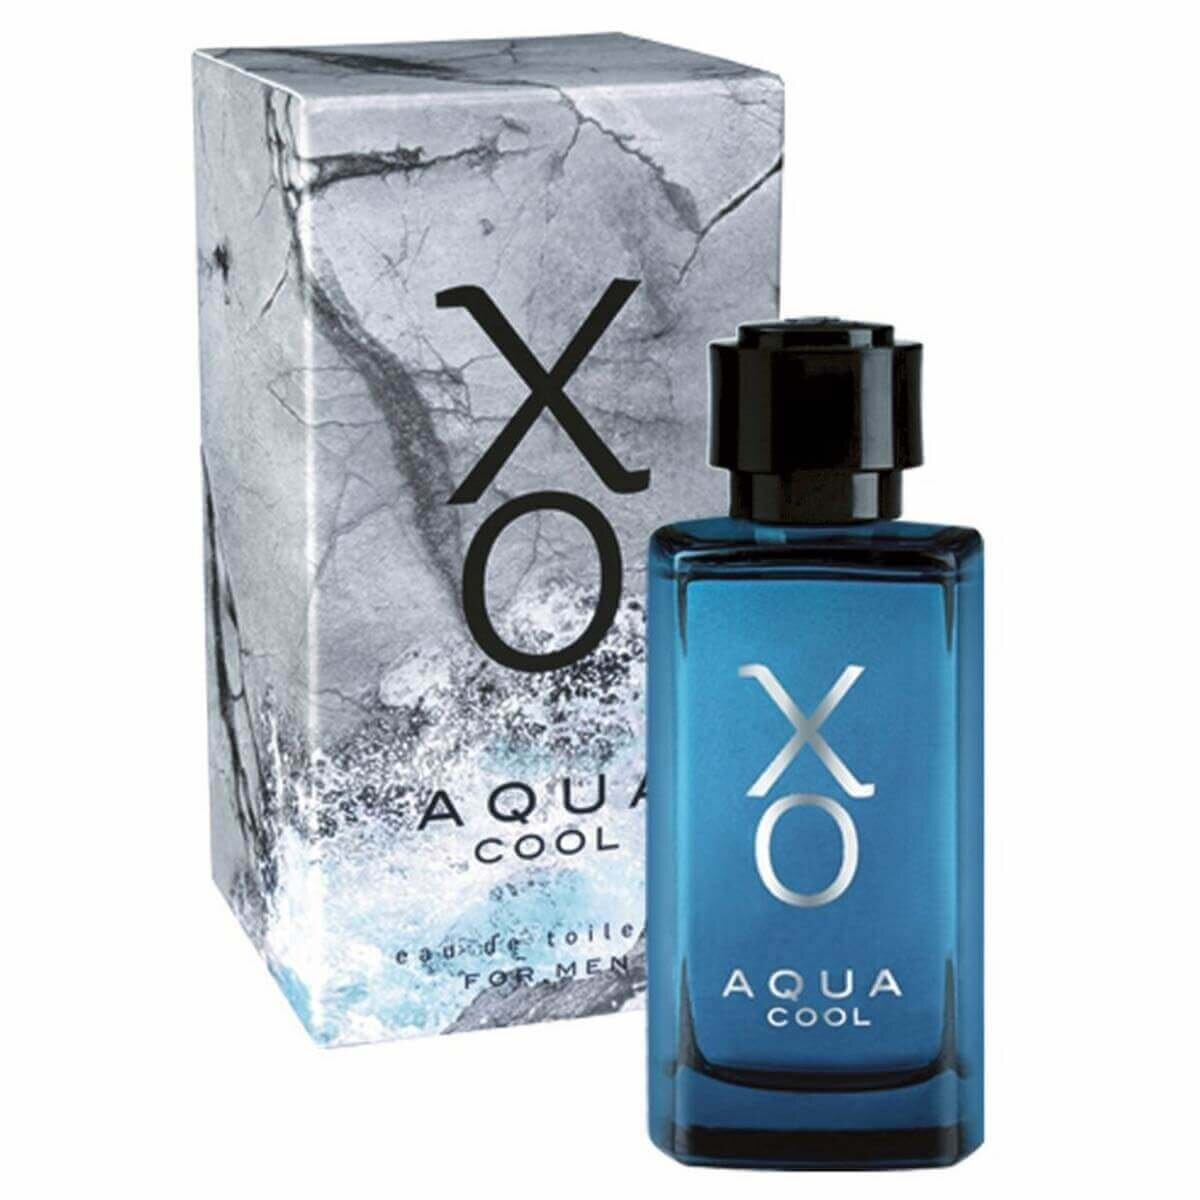 Aqua Cool Erkek Edt 100ml